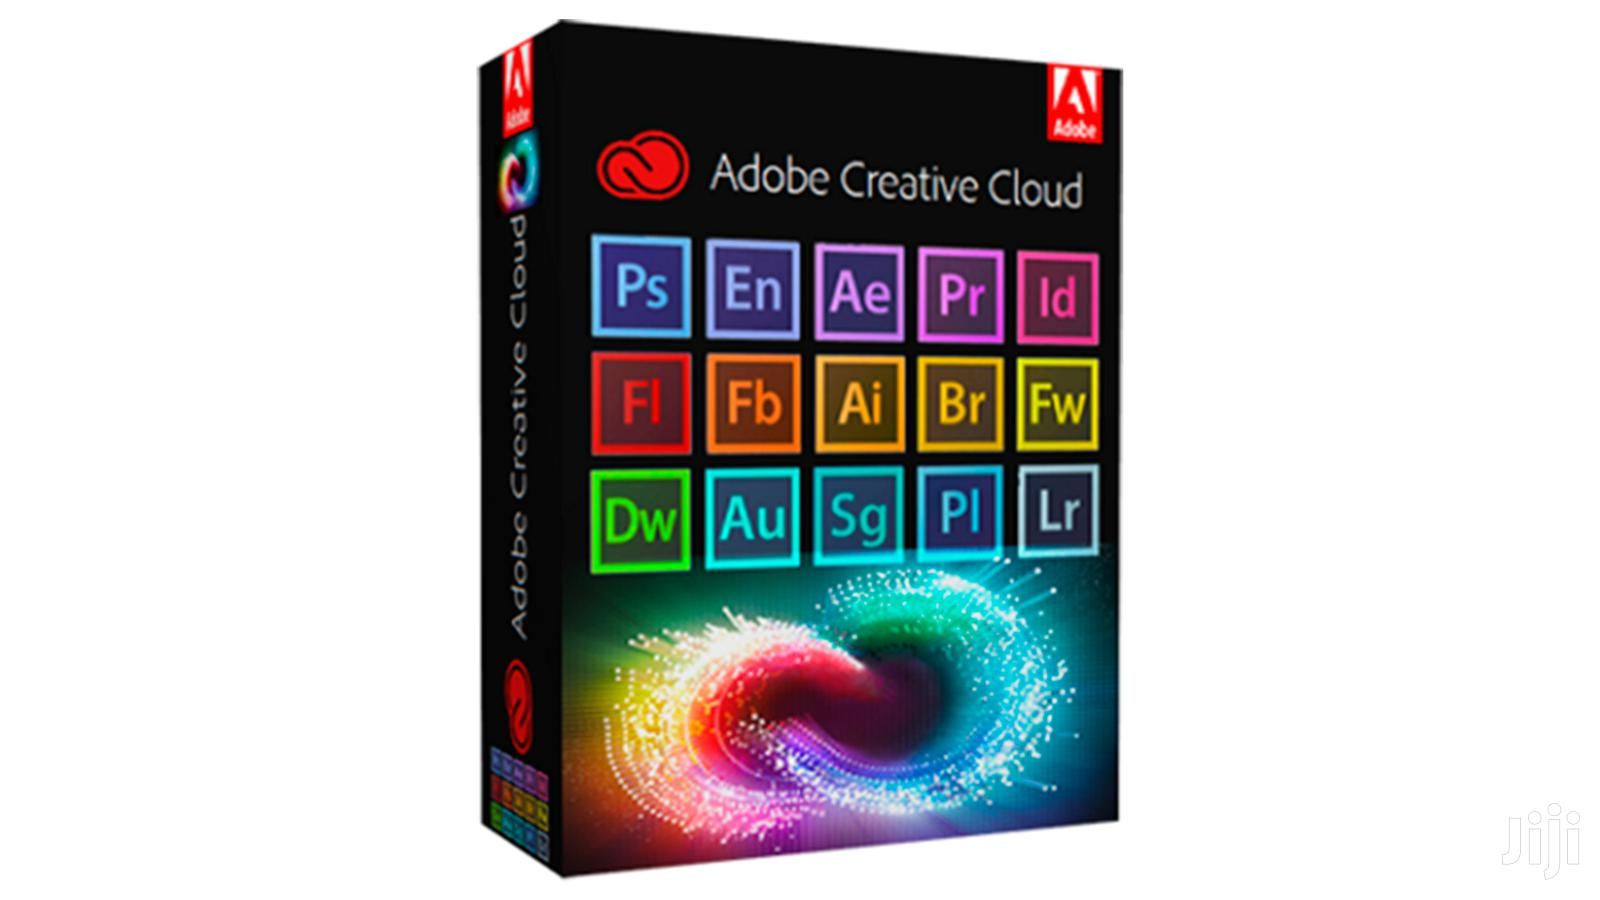 Adobe Master Collection (2020) | Software for sale in East Legon, Greater Accra, Ghana